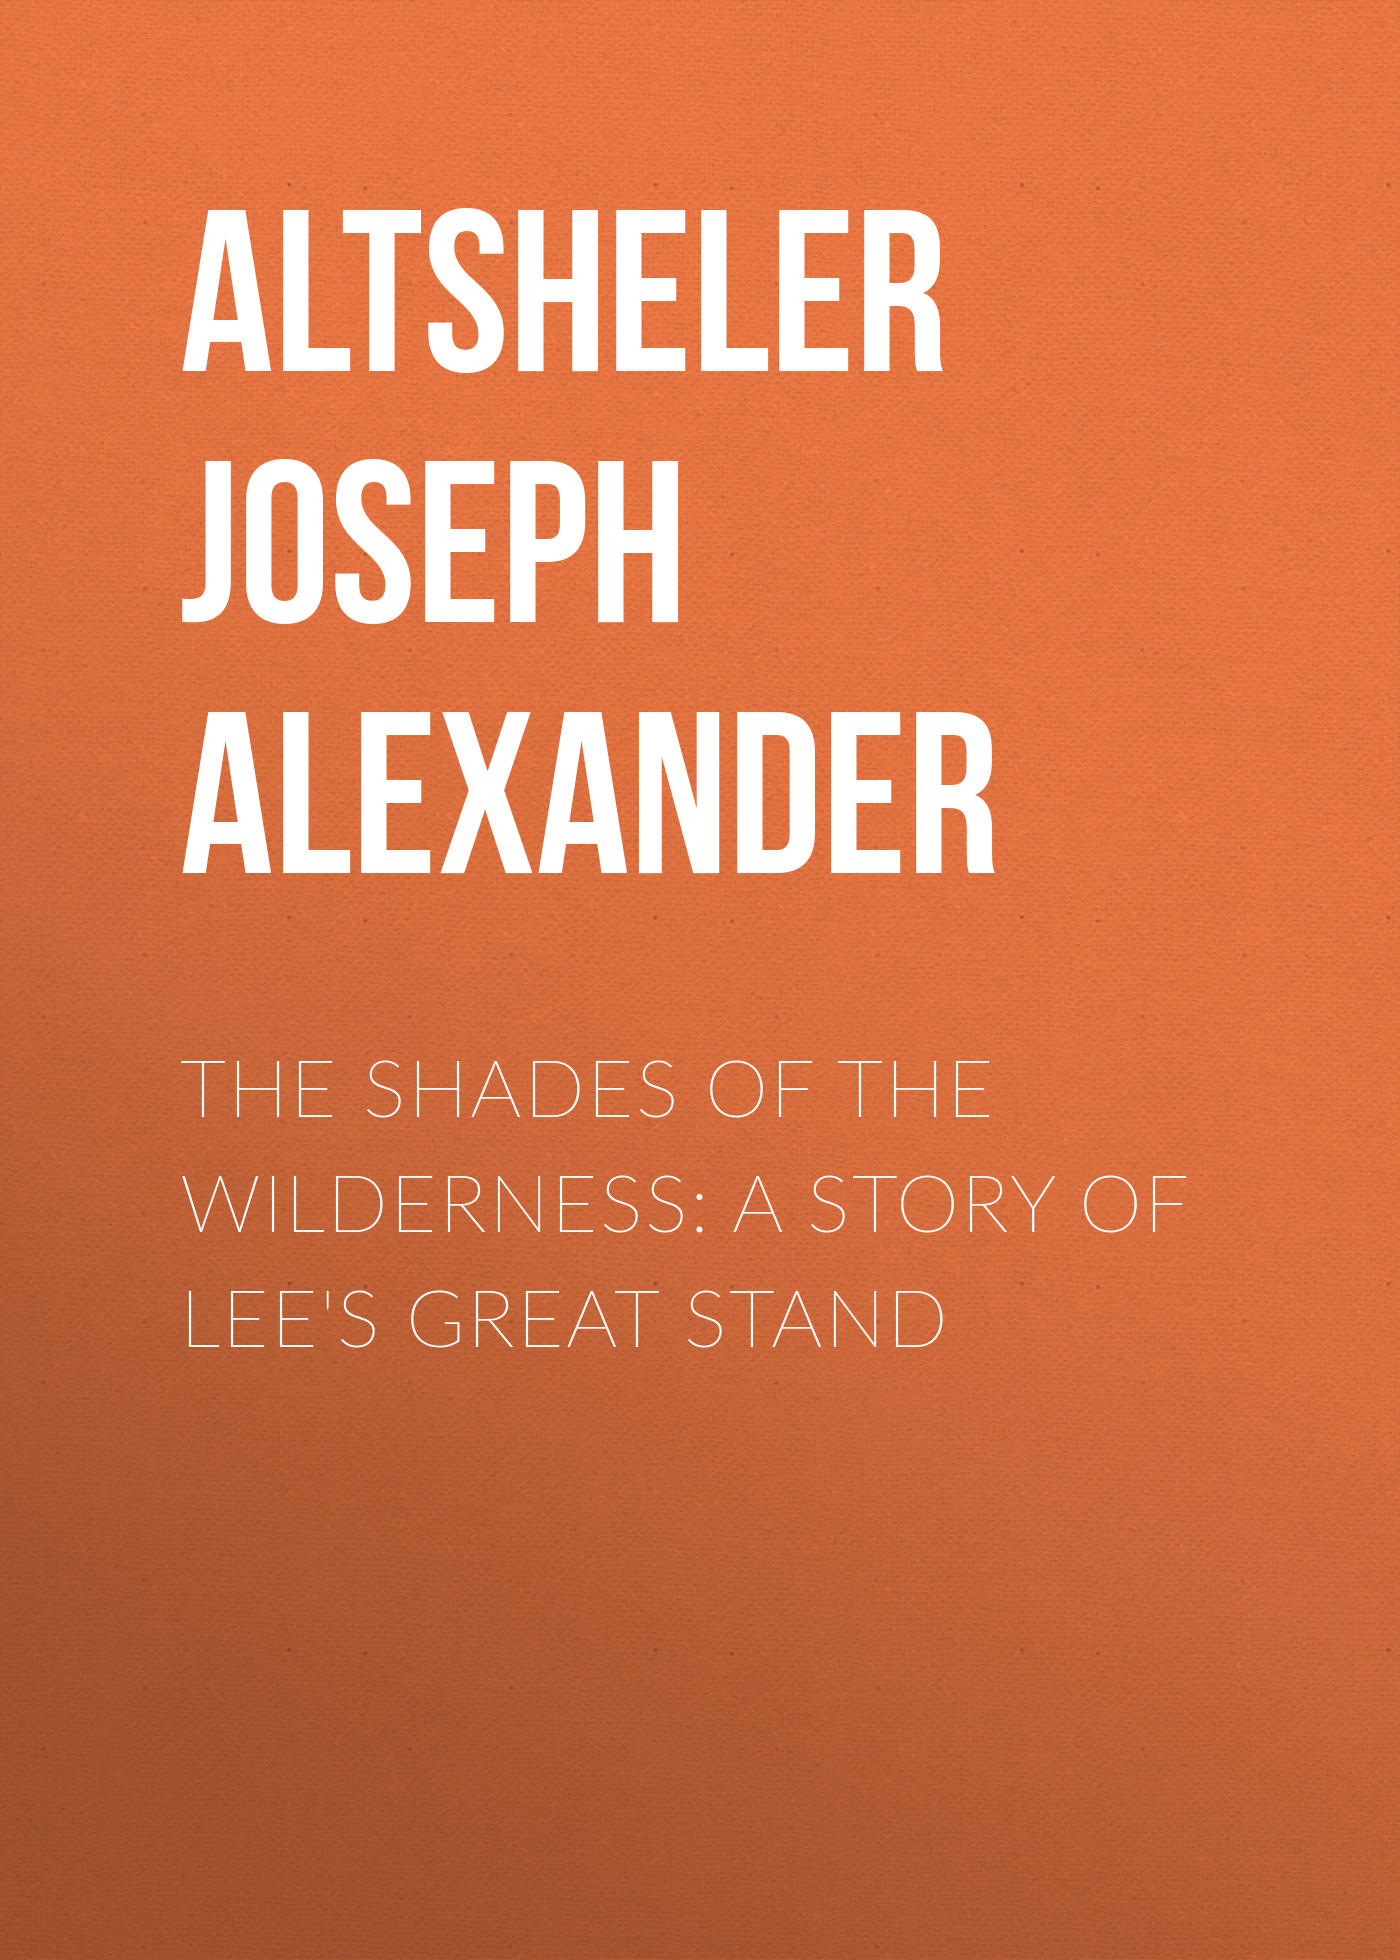 Altsheler Joseph Alexander The Shades of the Wilderness: A Story of Lee's Great Stand зрительная труба meade wilderness 15–45x65